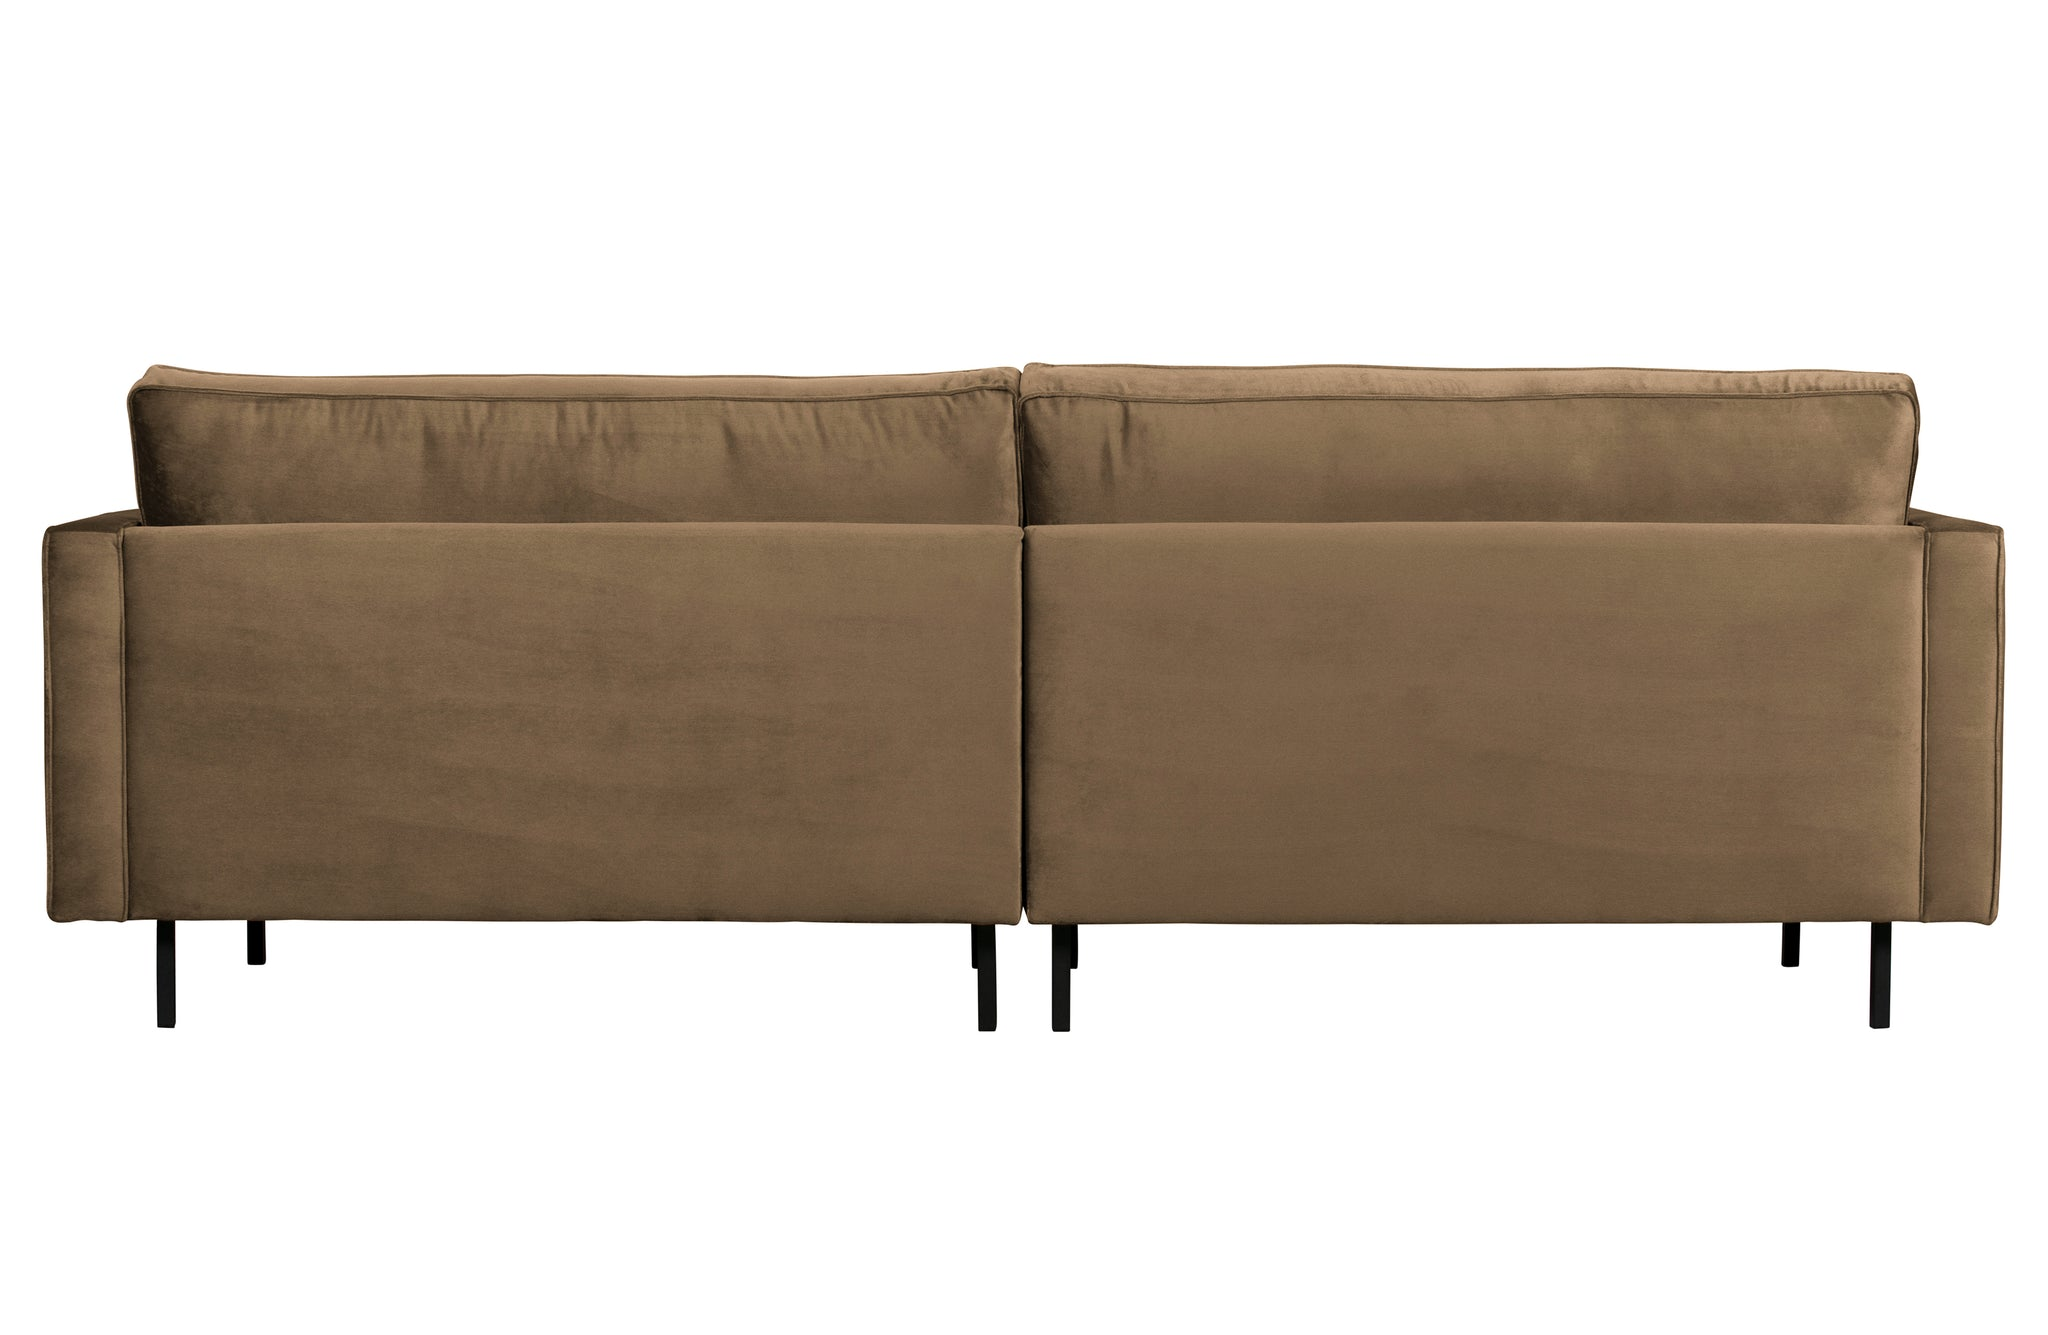 Rodeo Classic Sofa 3-Sitzer in Samt